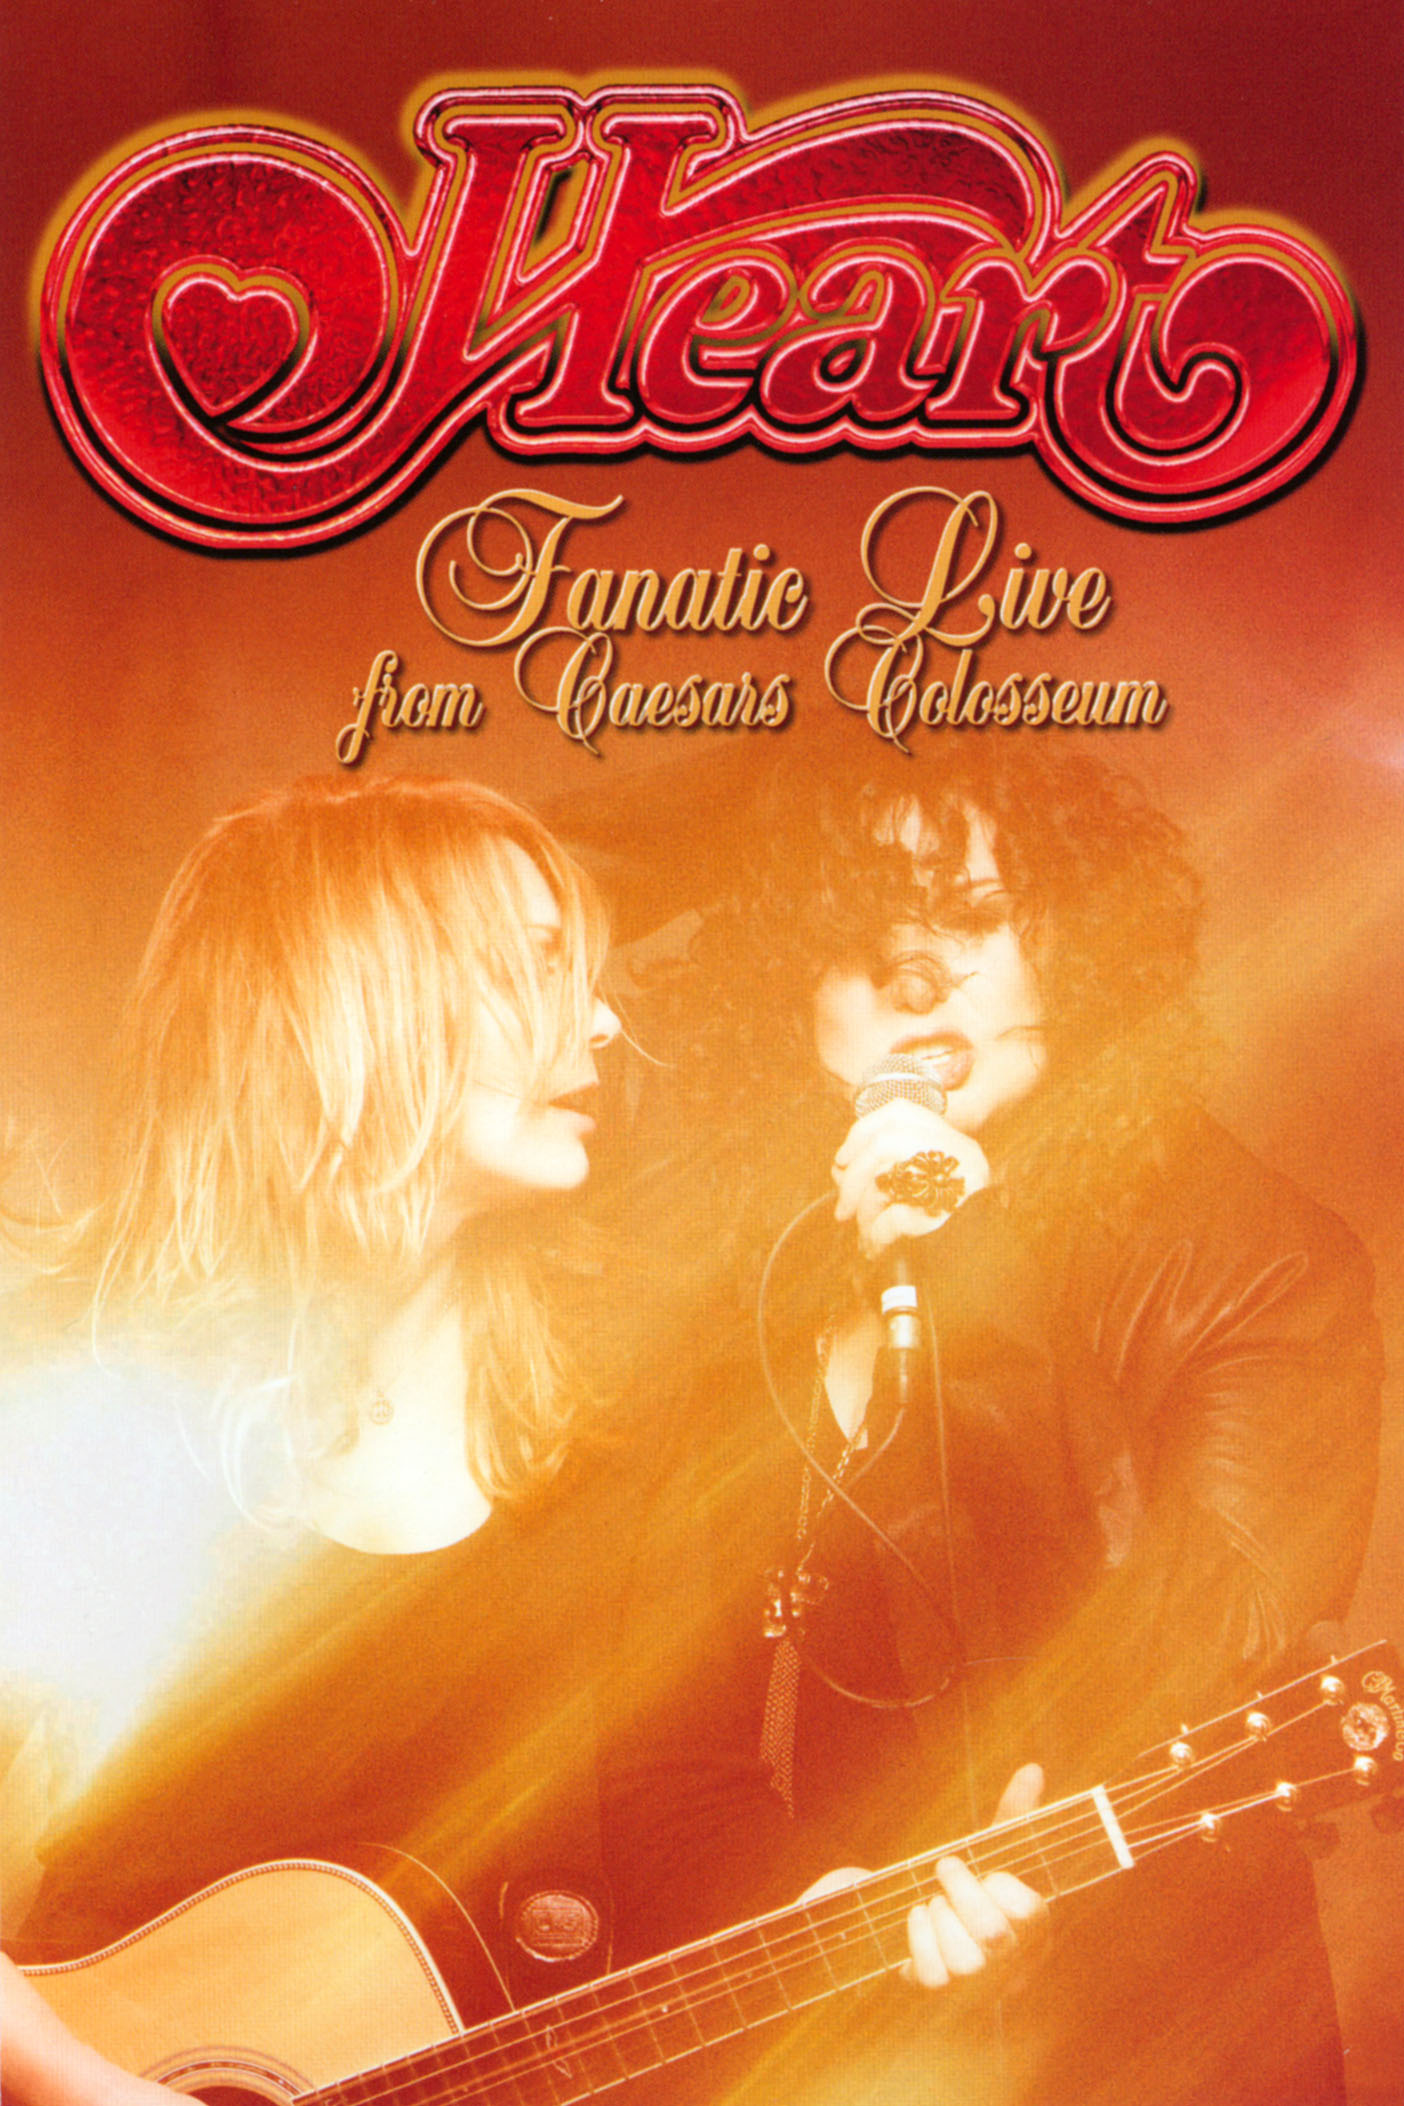 Heart: Fanatic Live from Caesar's Colosseum